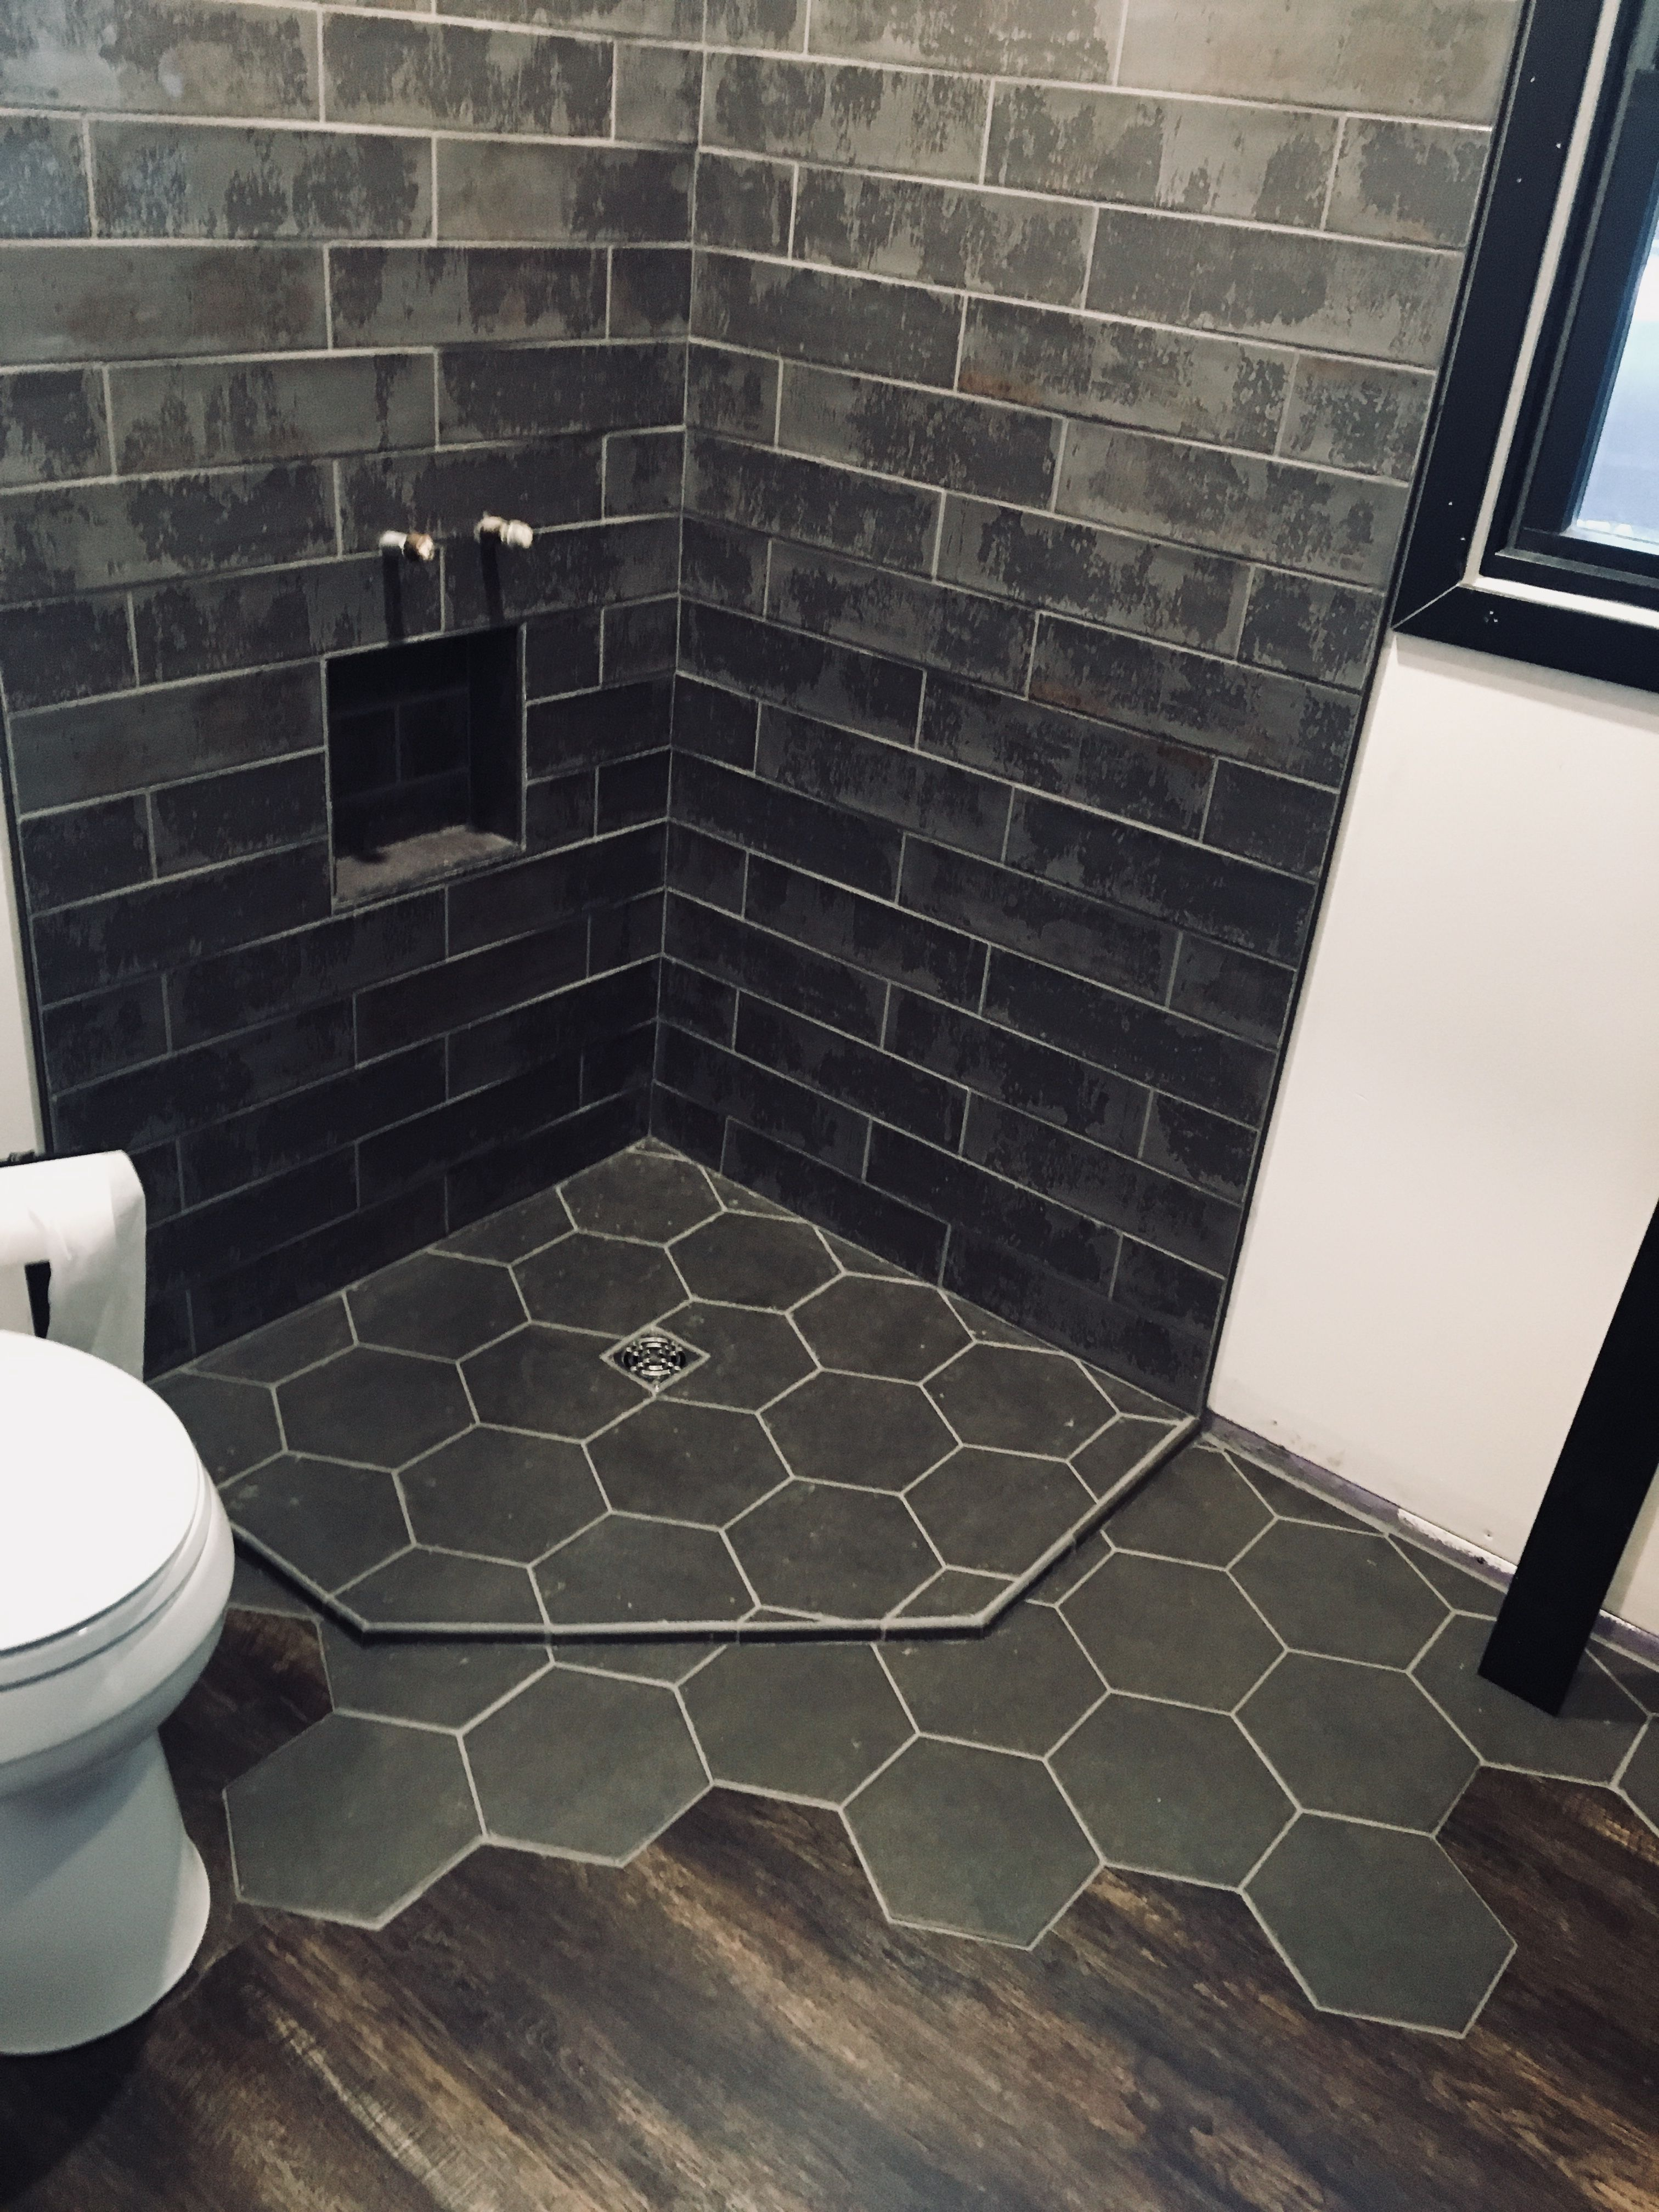 37+ Hexagon tile to wood transition ideas